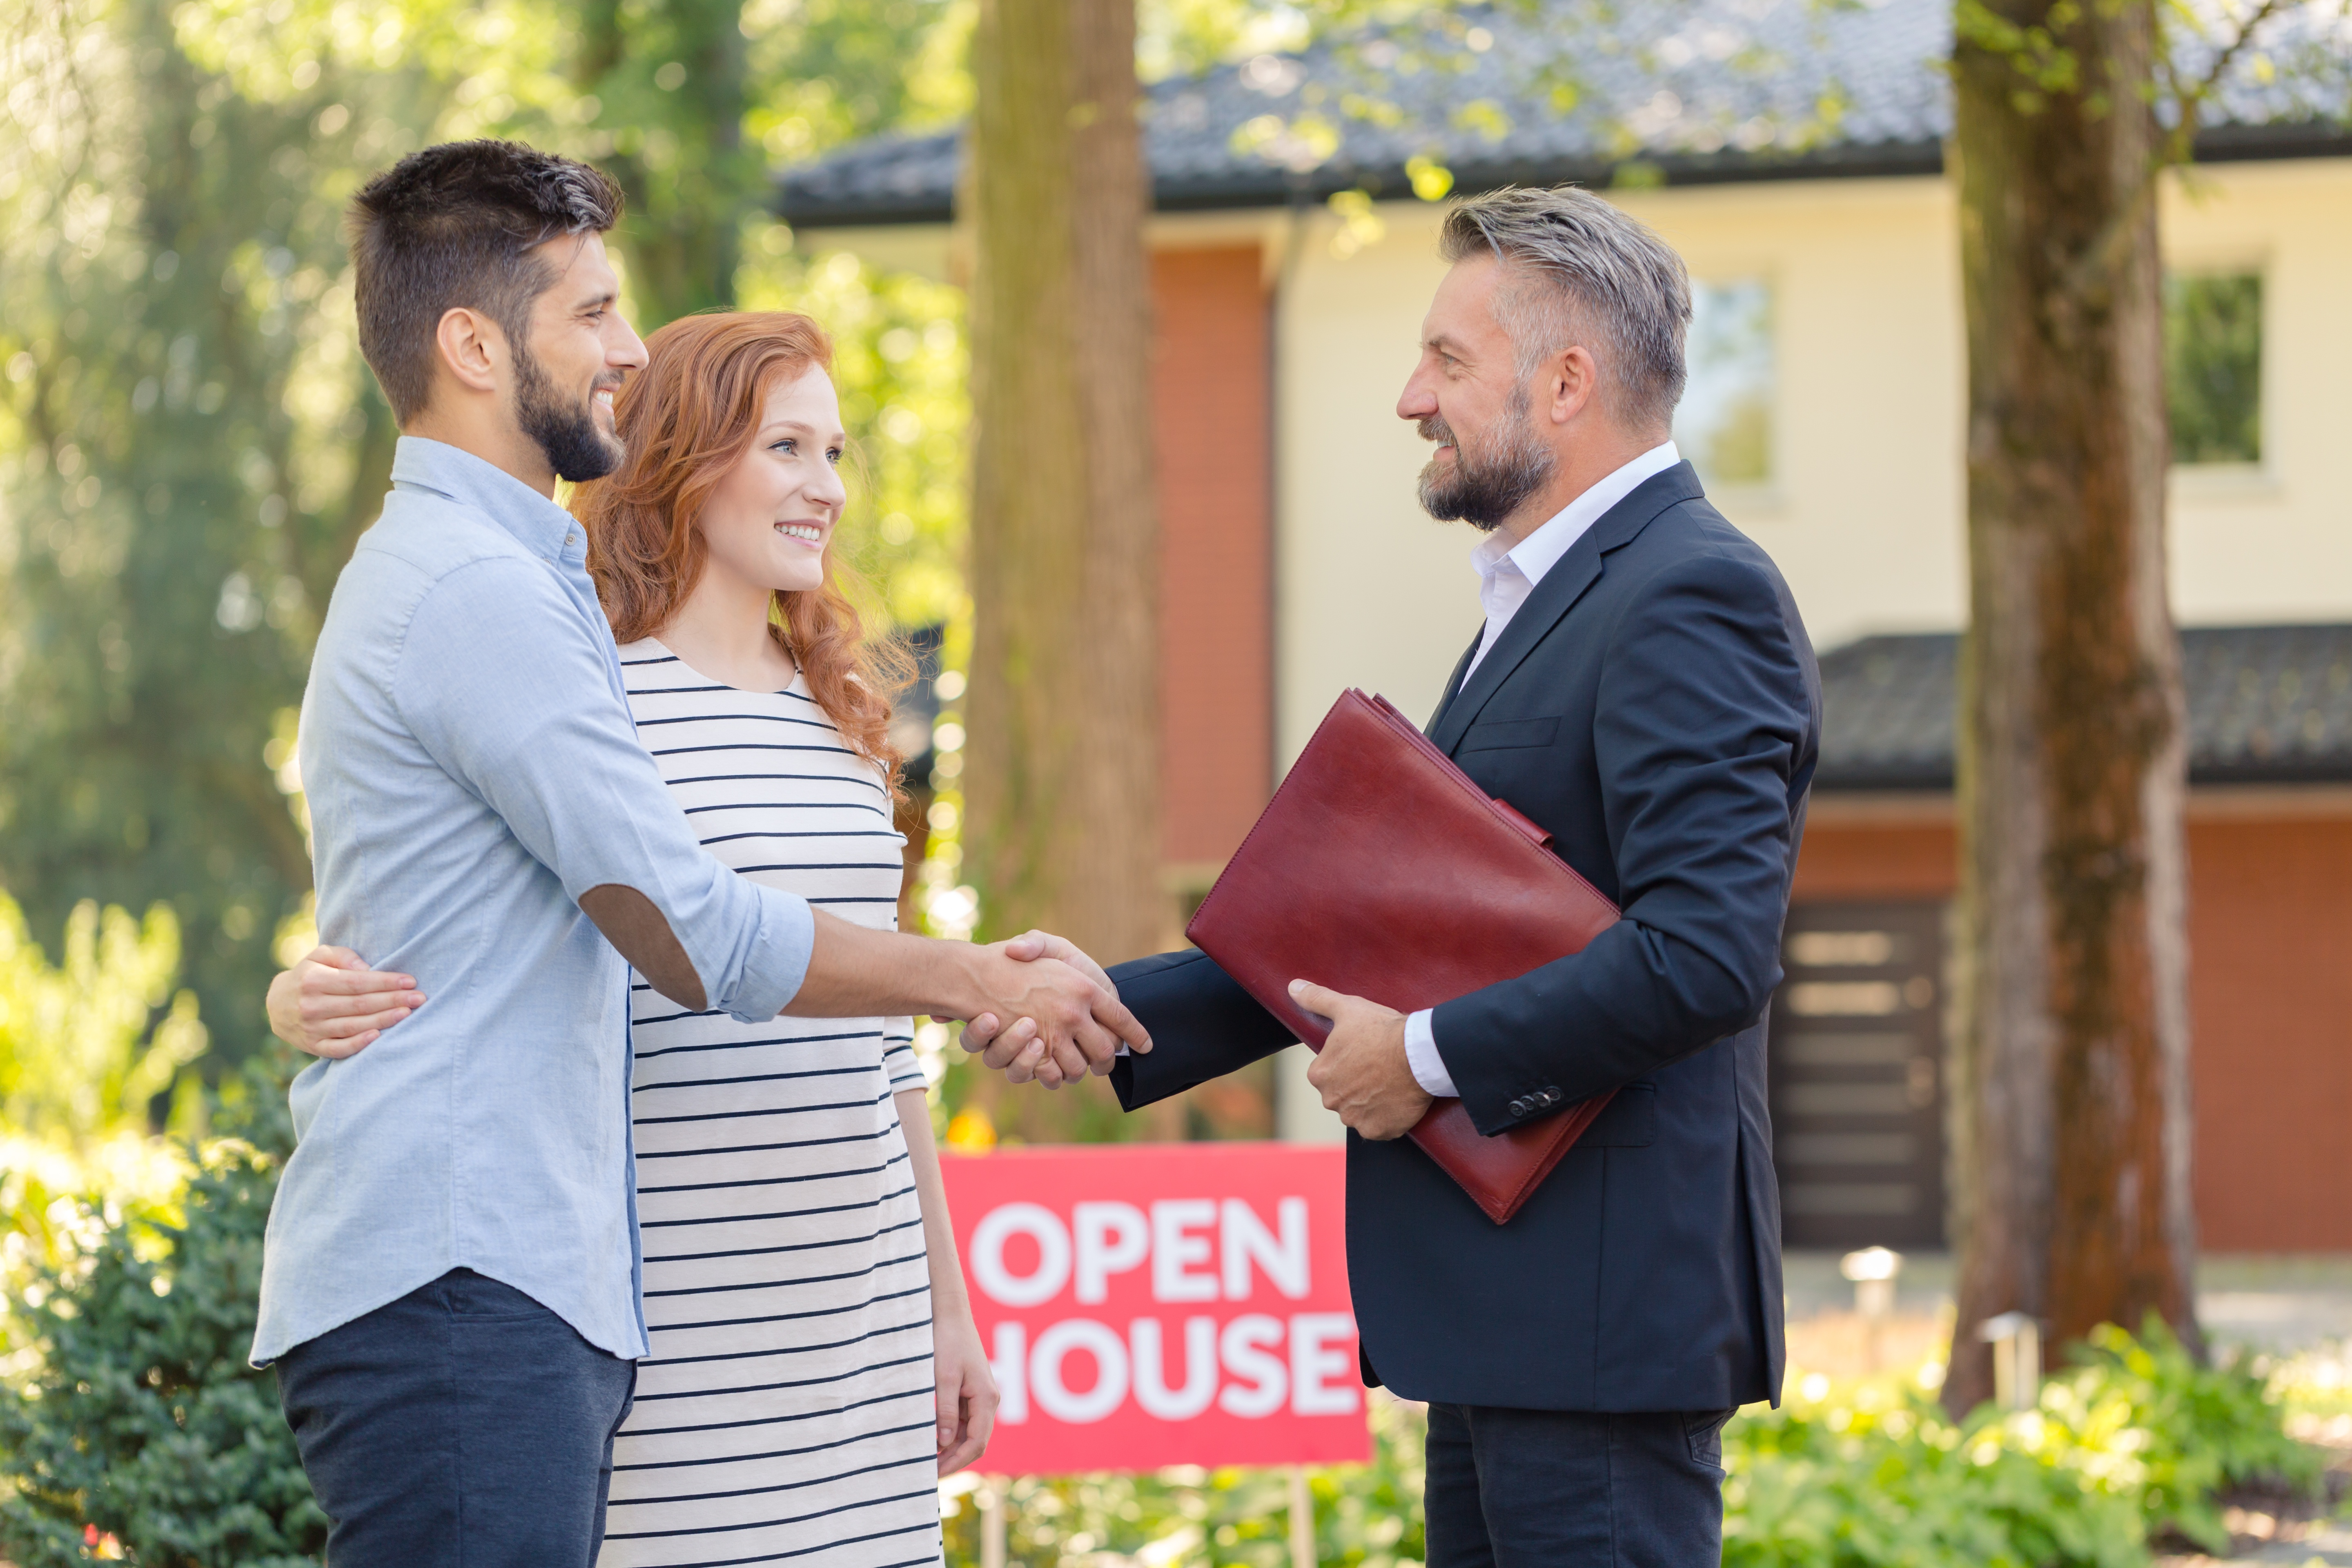 Match Made in Real Estate Heaven? Find the Perfect Realtor For You